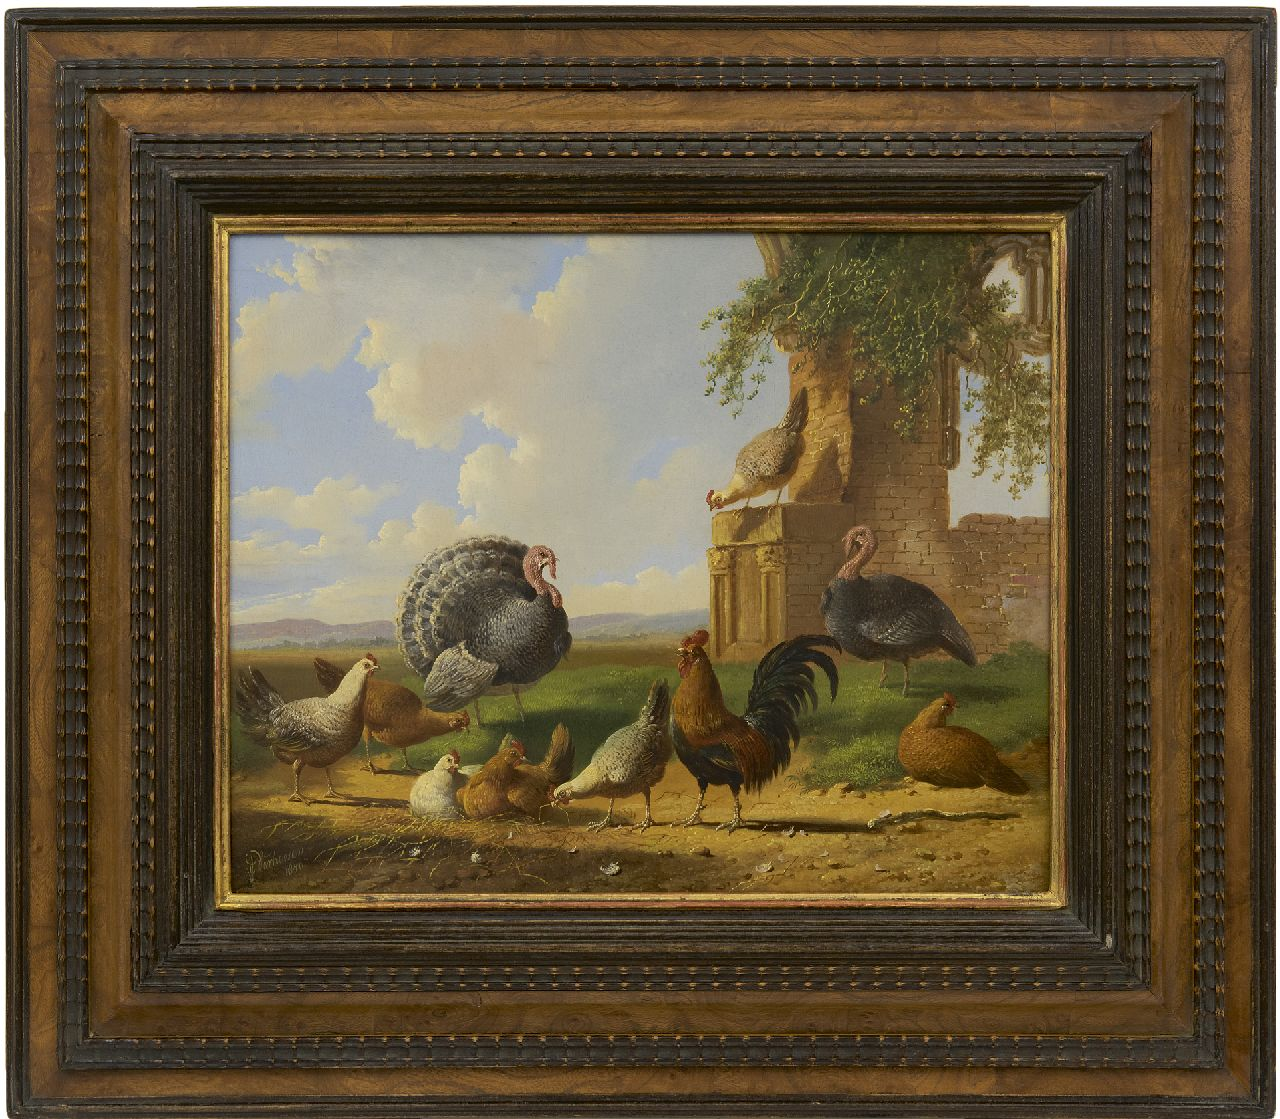 Verhoesen A.  | Albertus Verhoesen | Paintings offered for sale | Turkeys and chicken in a landscape, oil on panel 30.5 x 37.6 cm, signed l.l. and painted 1870